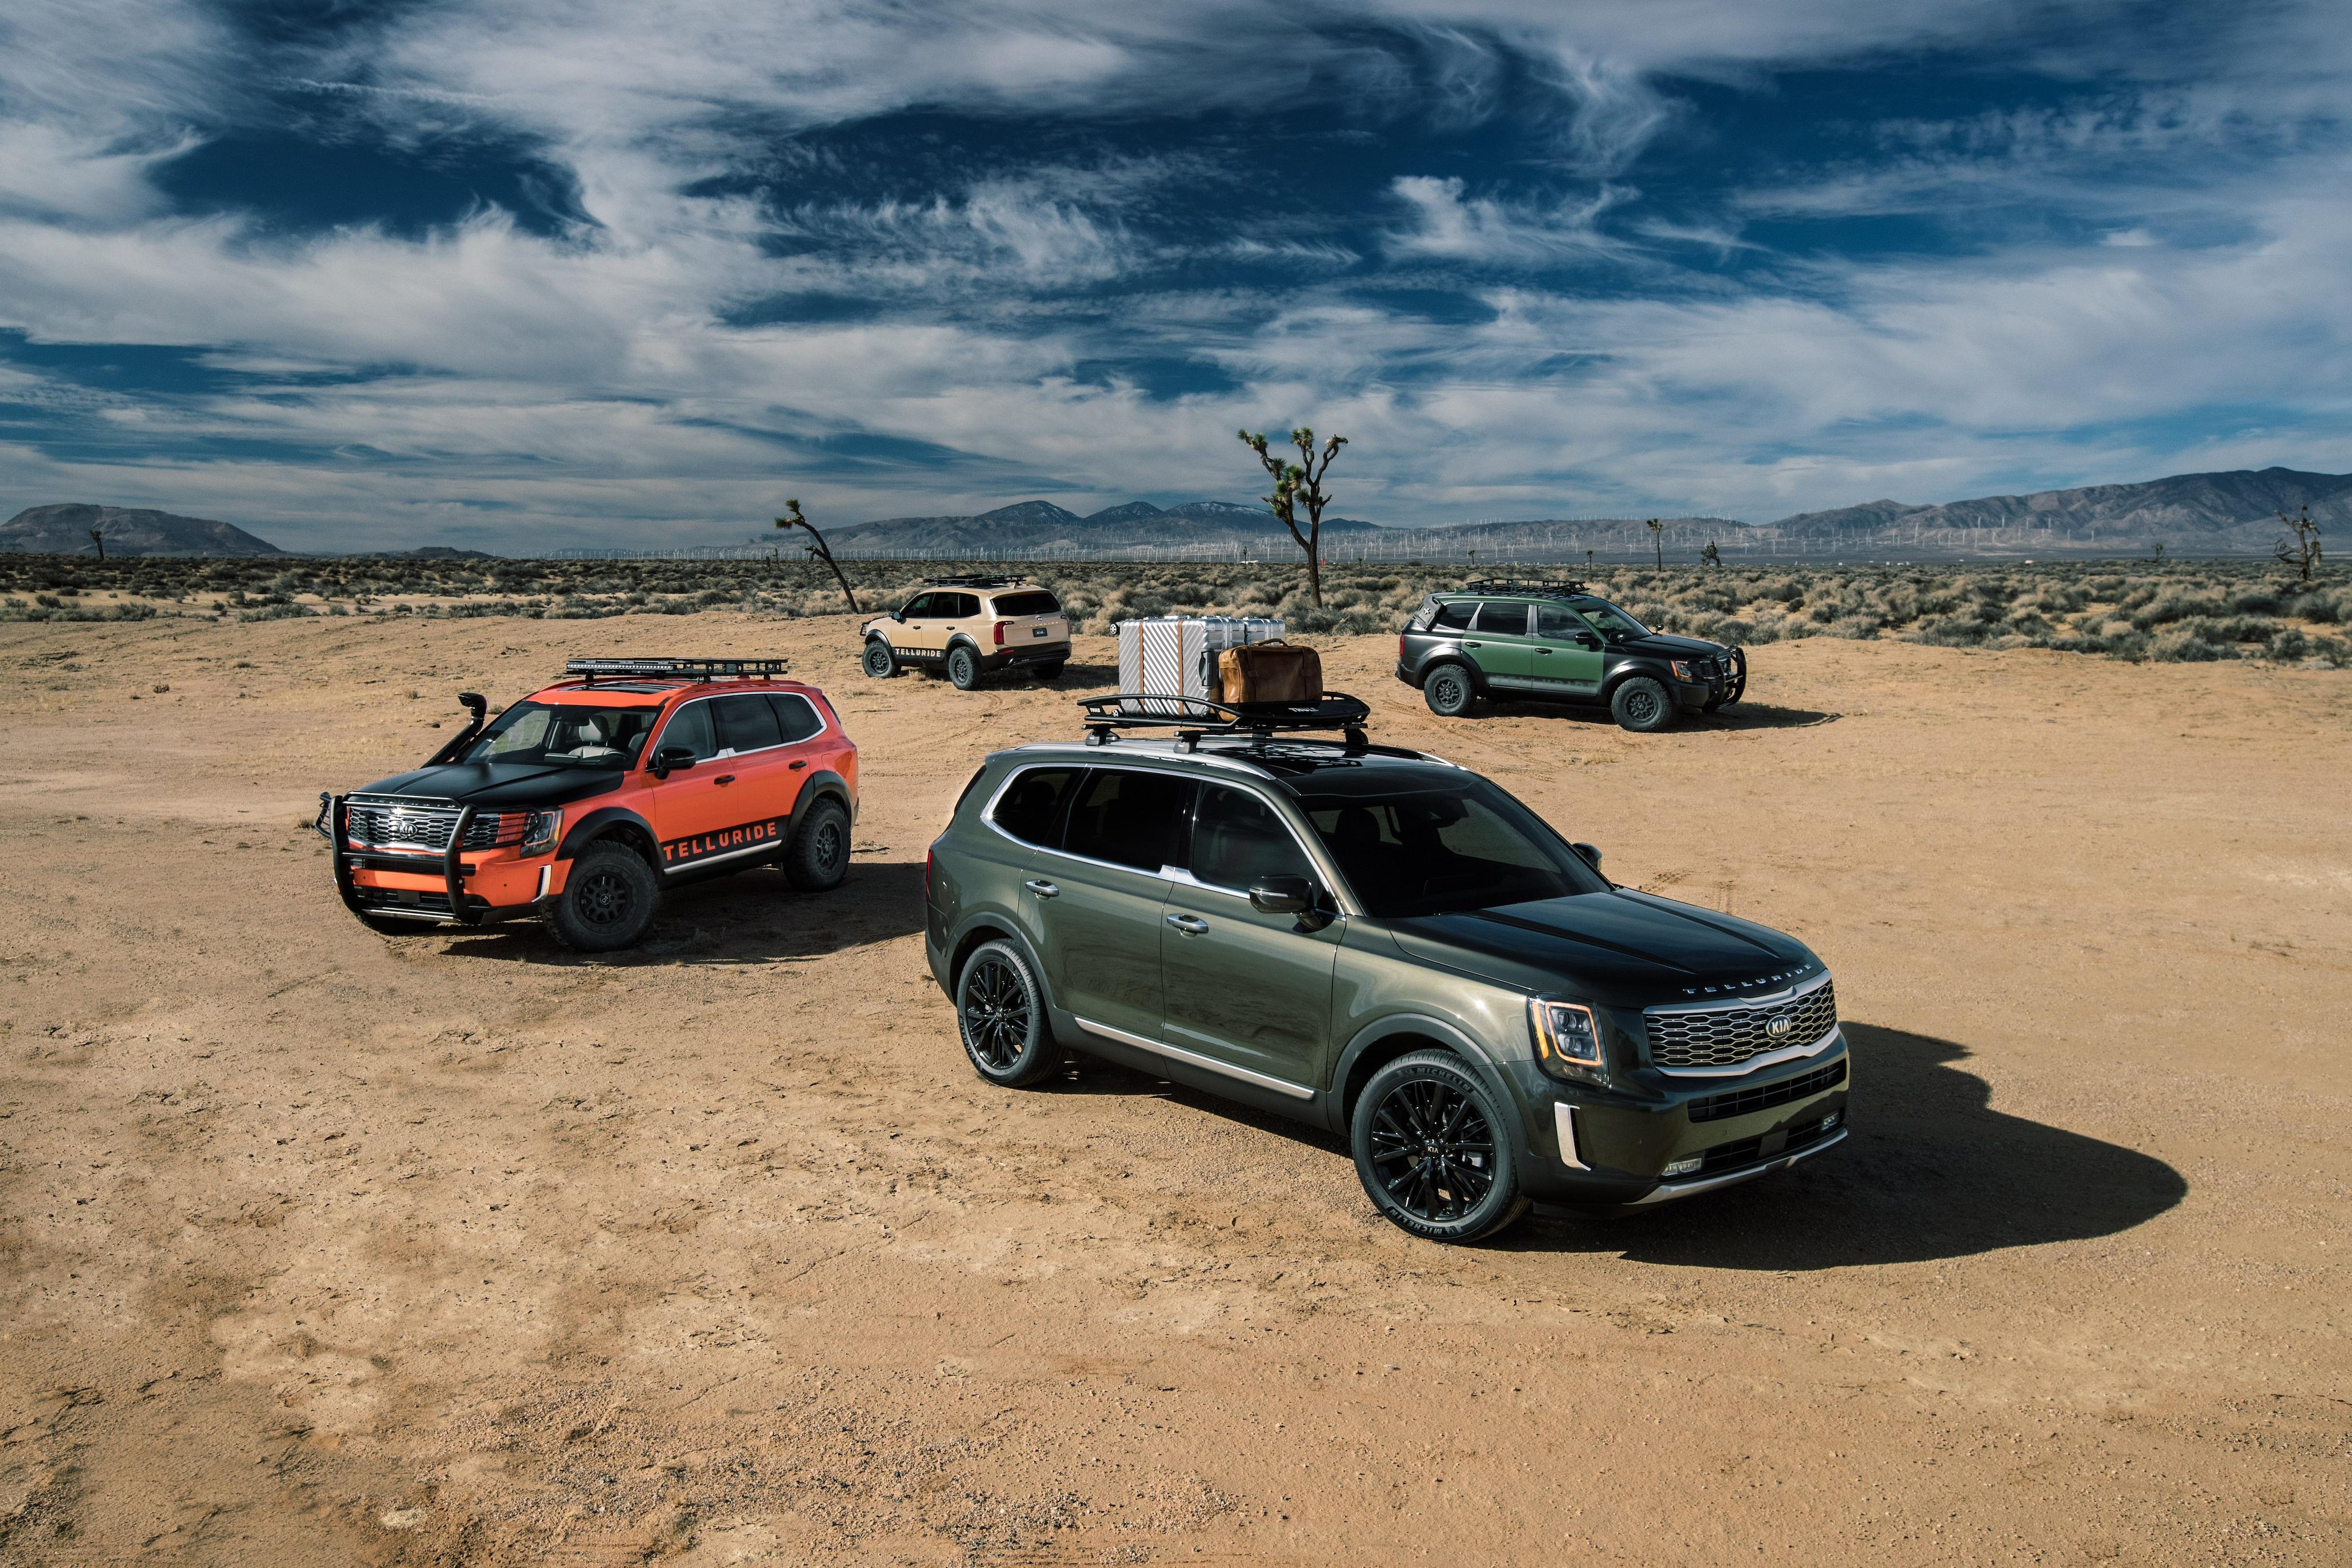 2020 Kia Telluride Near Me | In Folsom Lake, CA